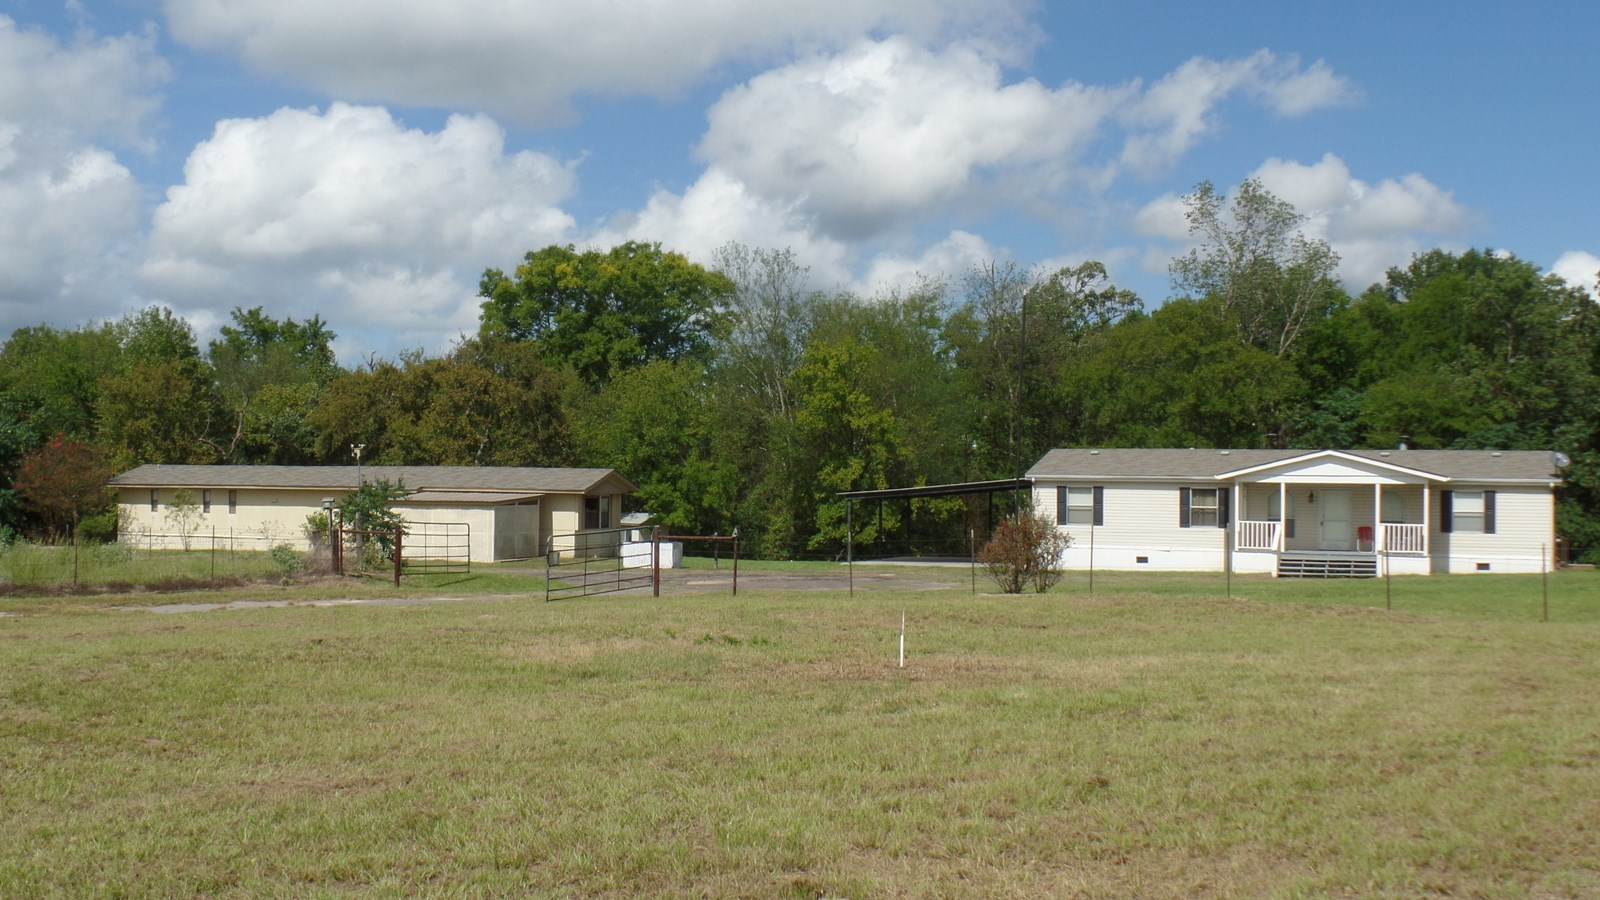 2 HOMES  10 ACRES - EAST TX COUNTRY HOMES - INCOME POTENTIAL